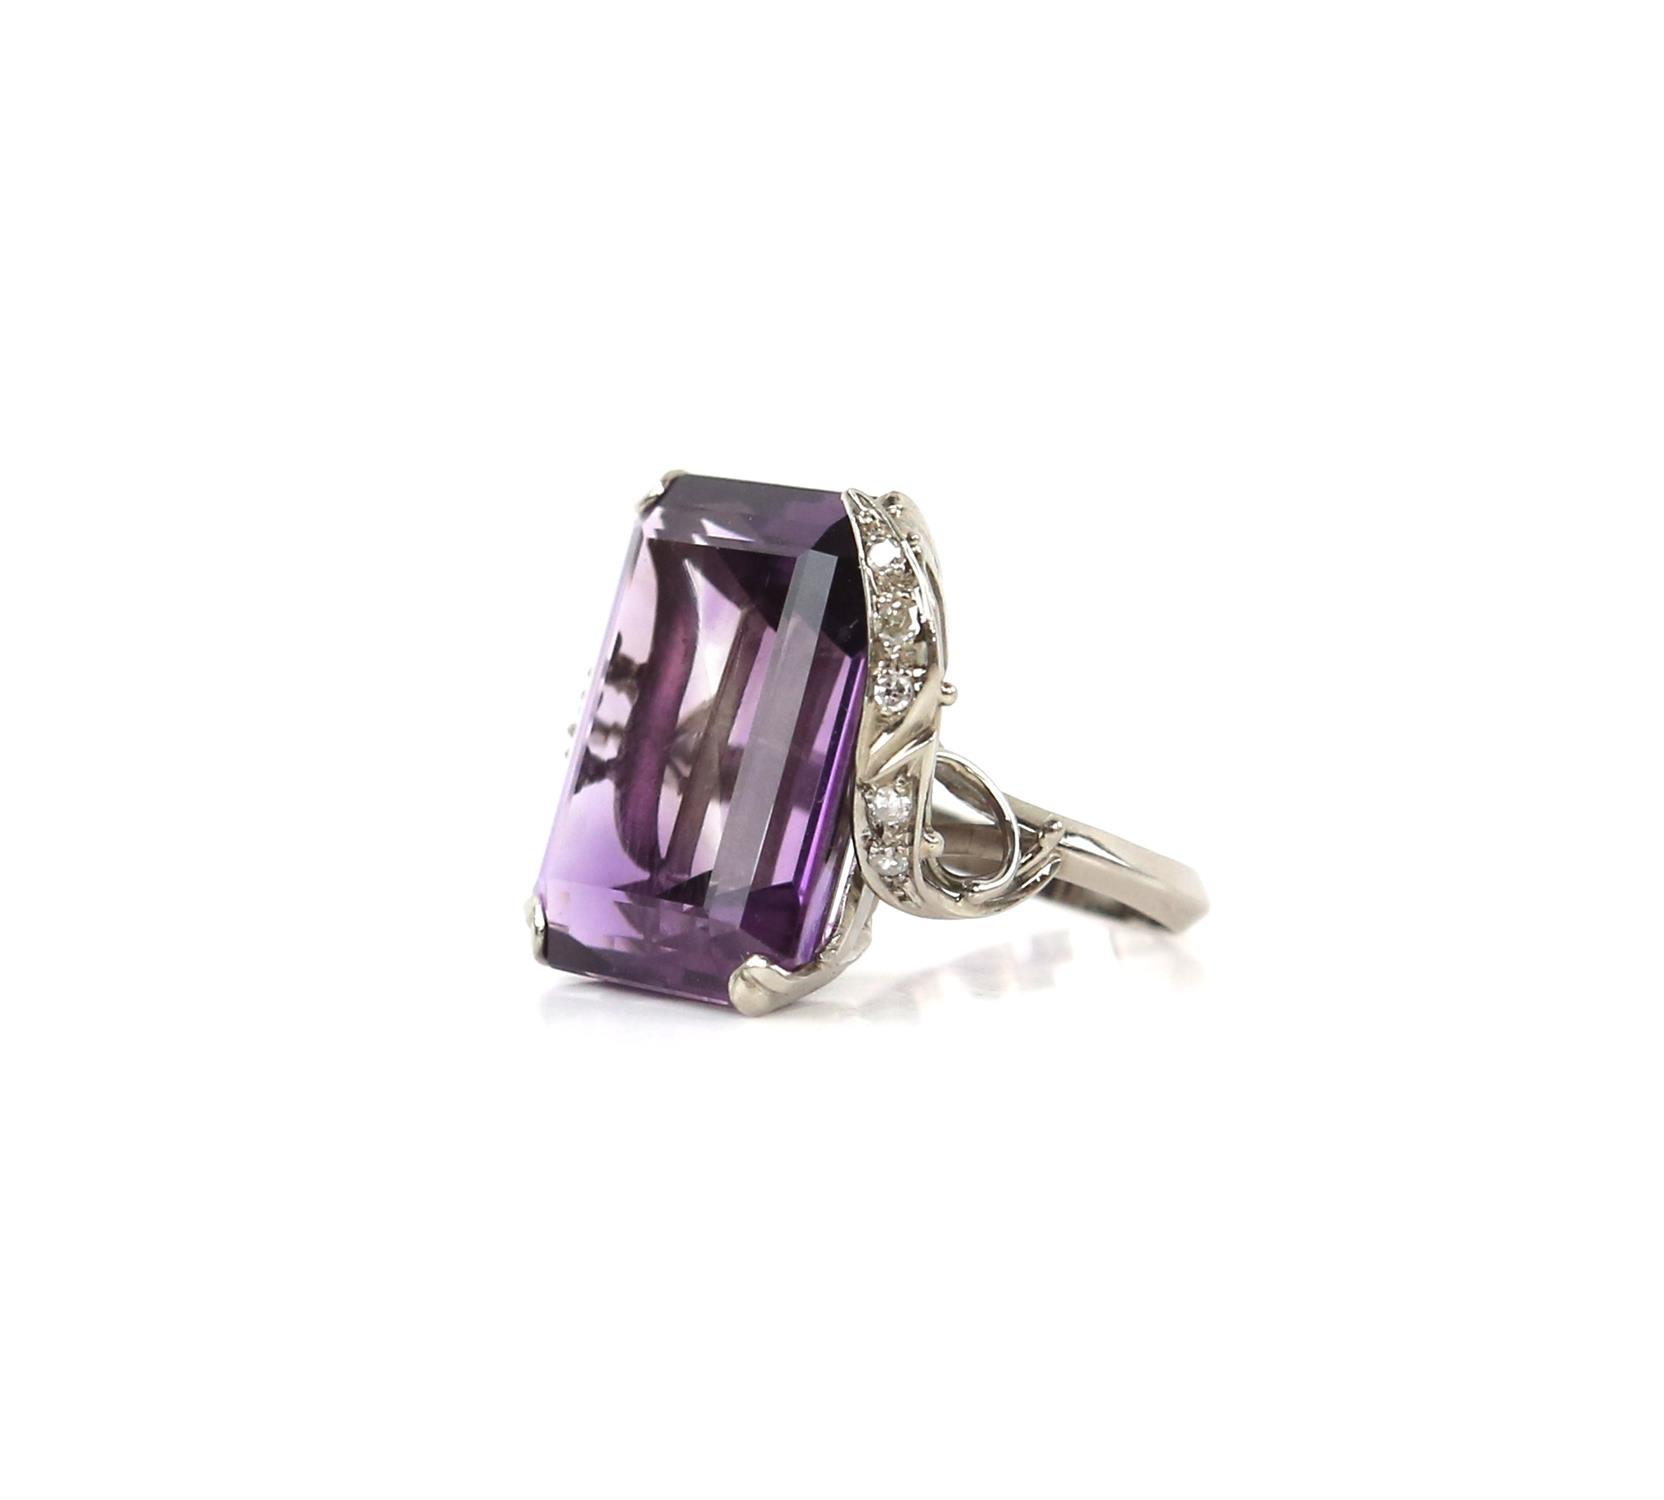 Amethyst and diamond cocktail ring, central rectangular cut amethyst, estimate weight 22.78 carats, - Image 3 of 7